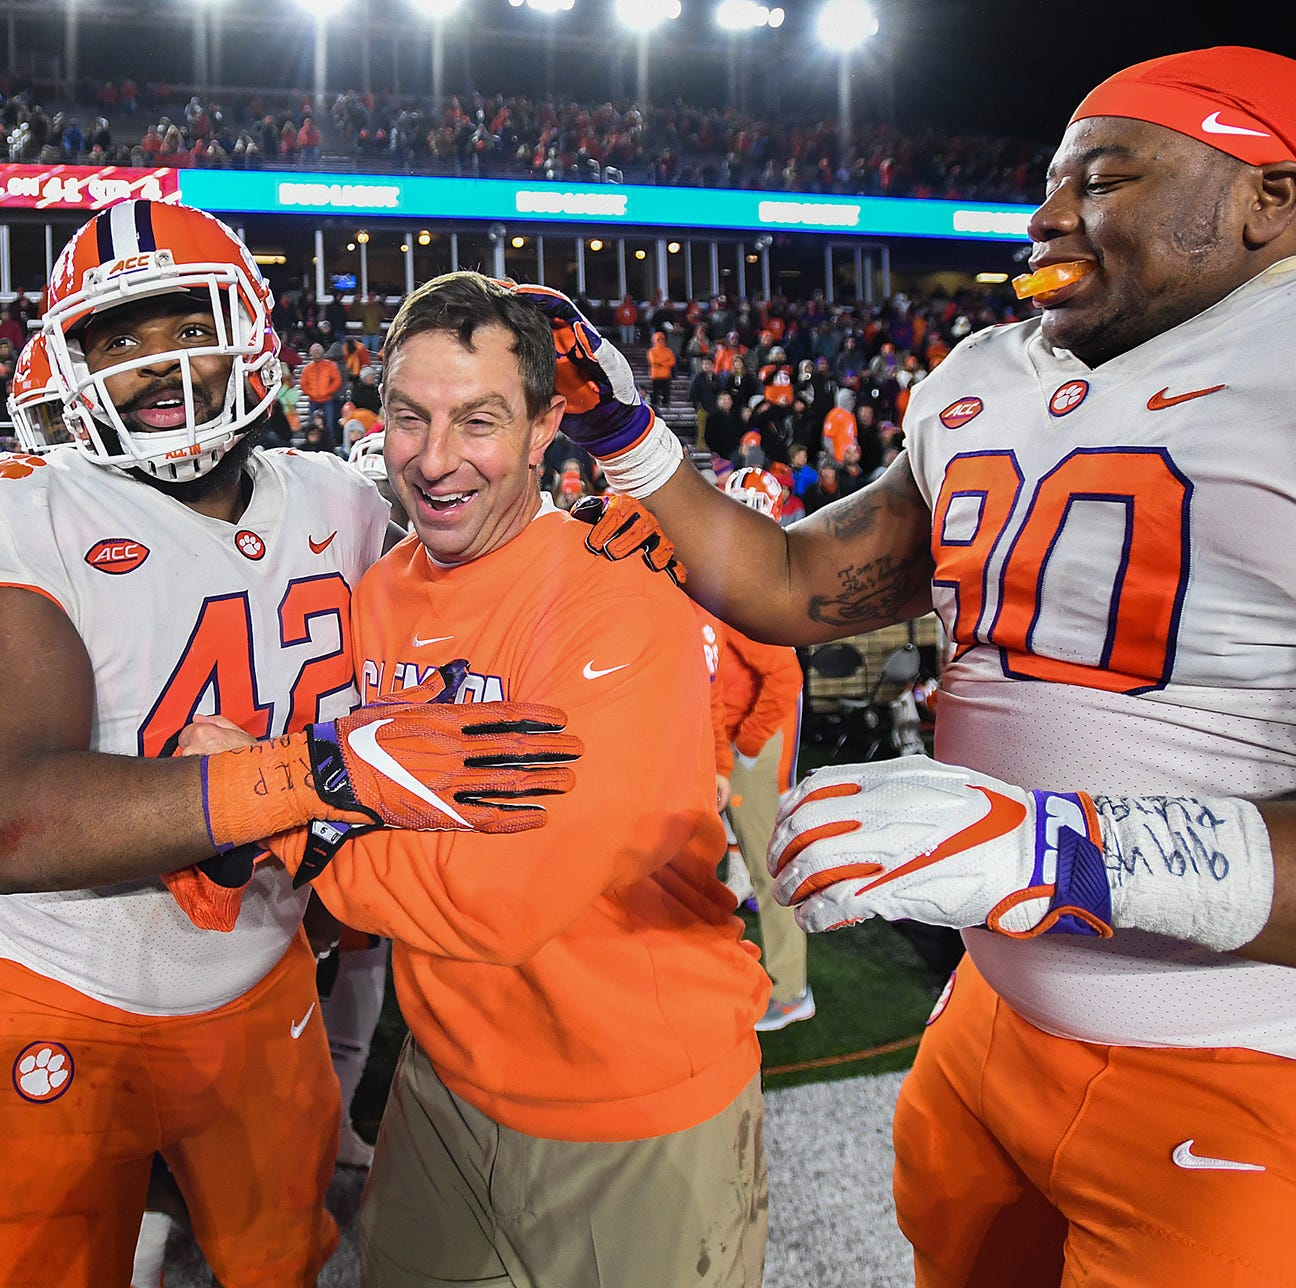 Clemson's Fridge Package is more than a playful gimmick